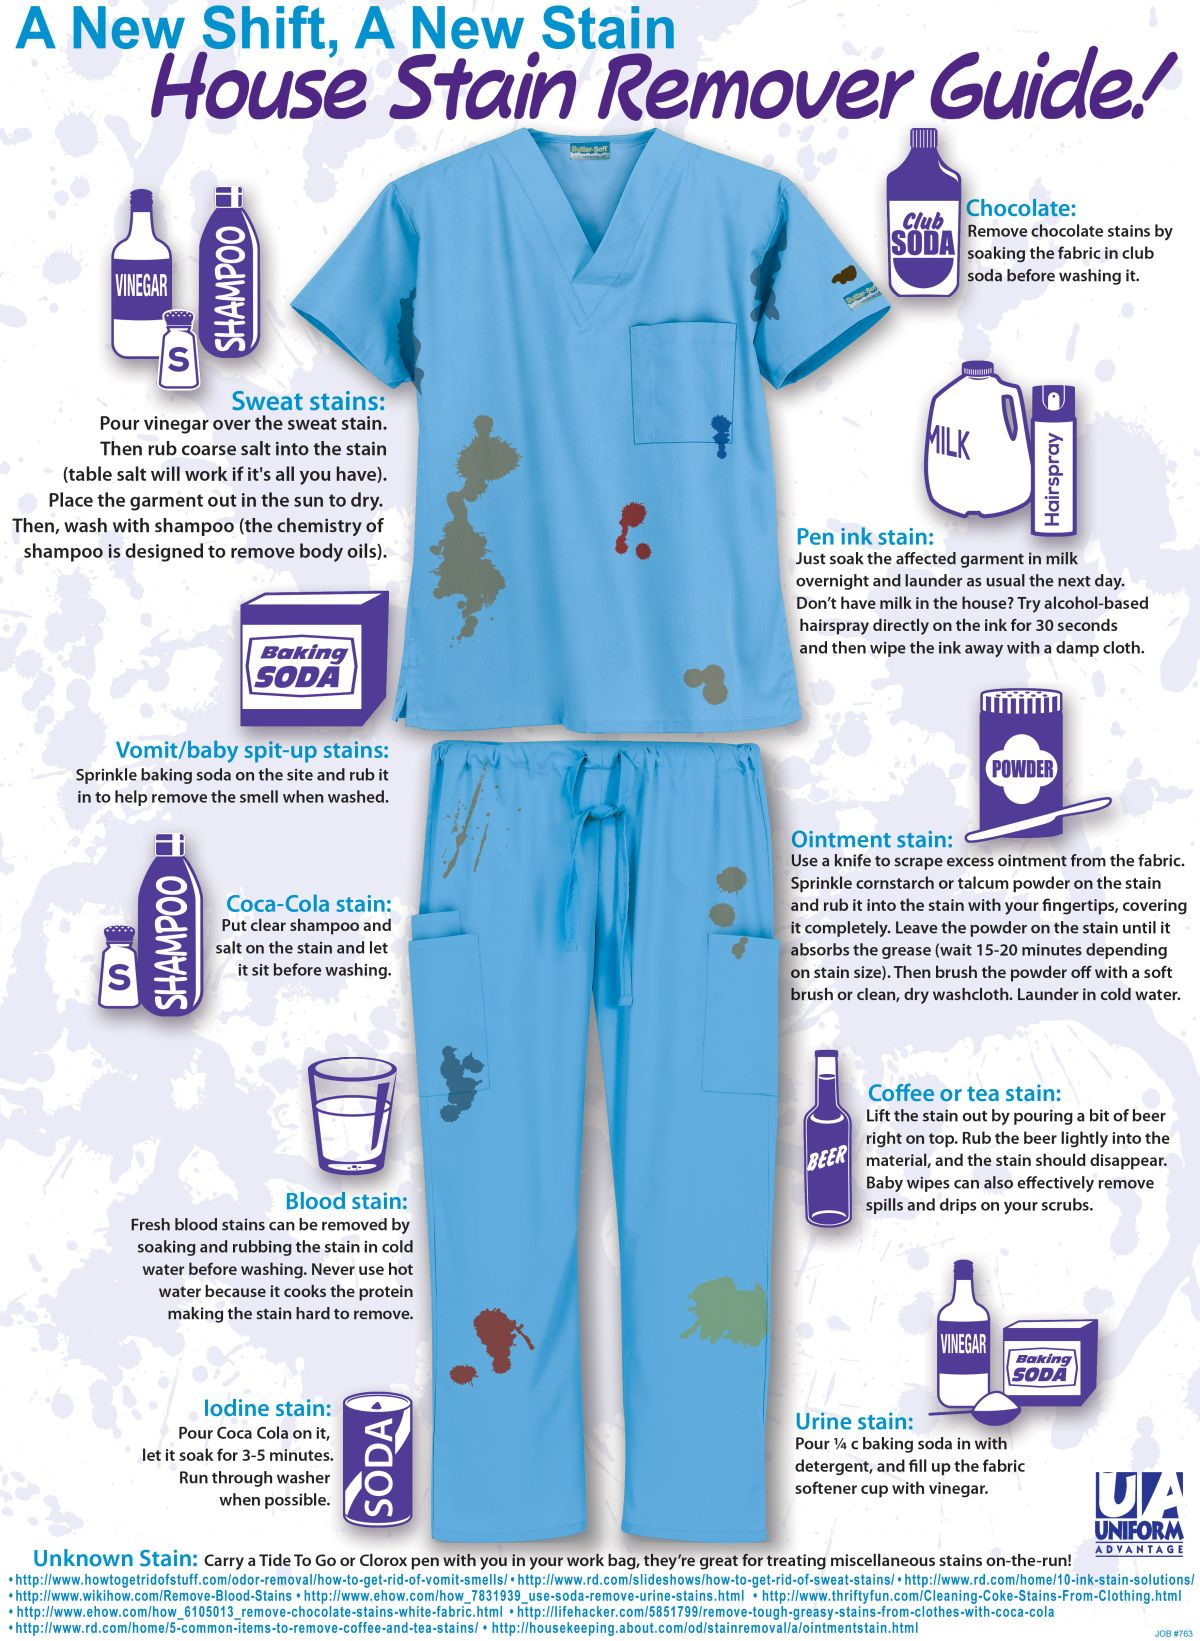 How To Get Out Blood Stains From White Shirt